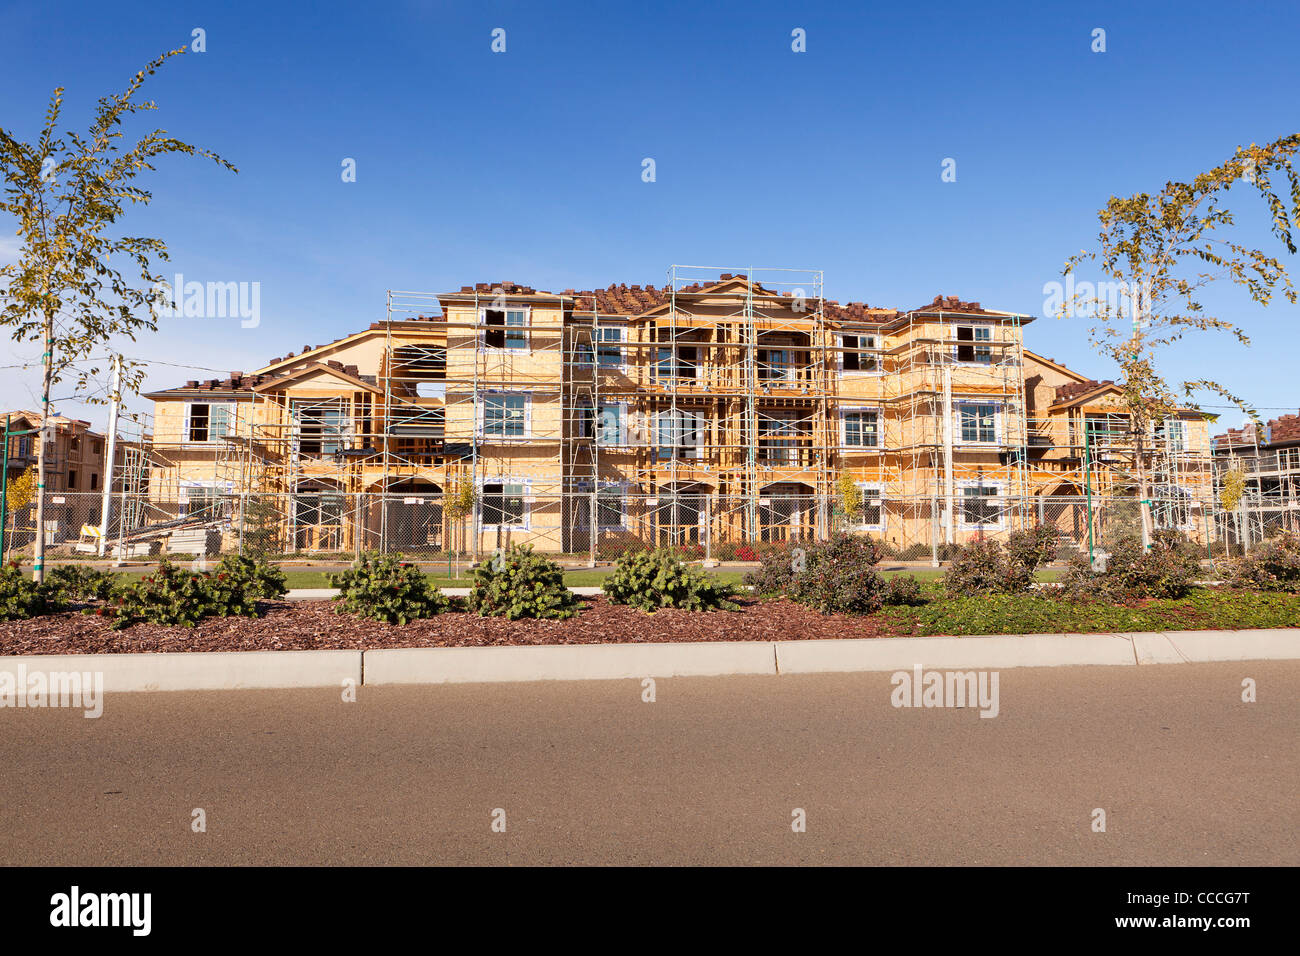 New condominium building under construction - Stock Image